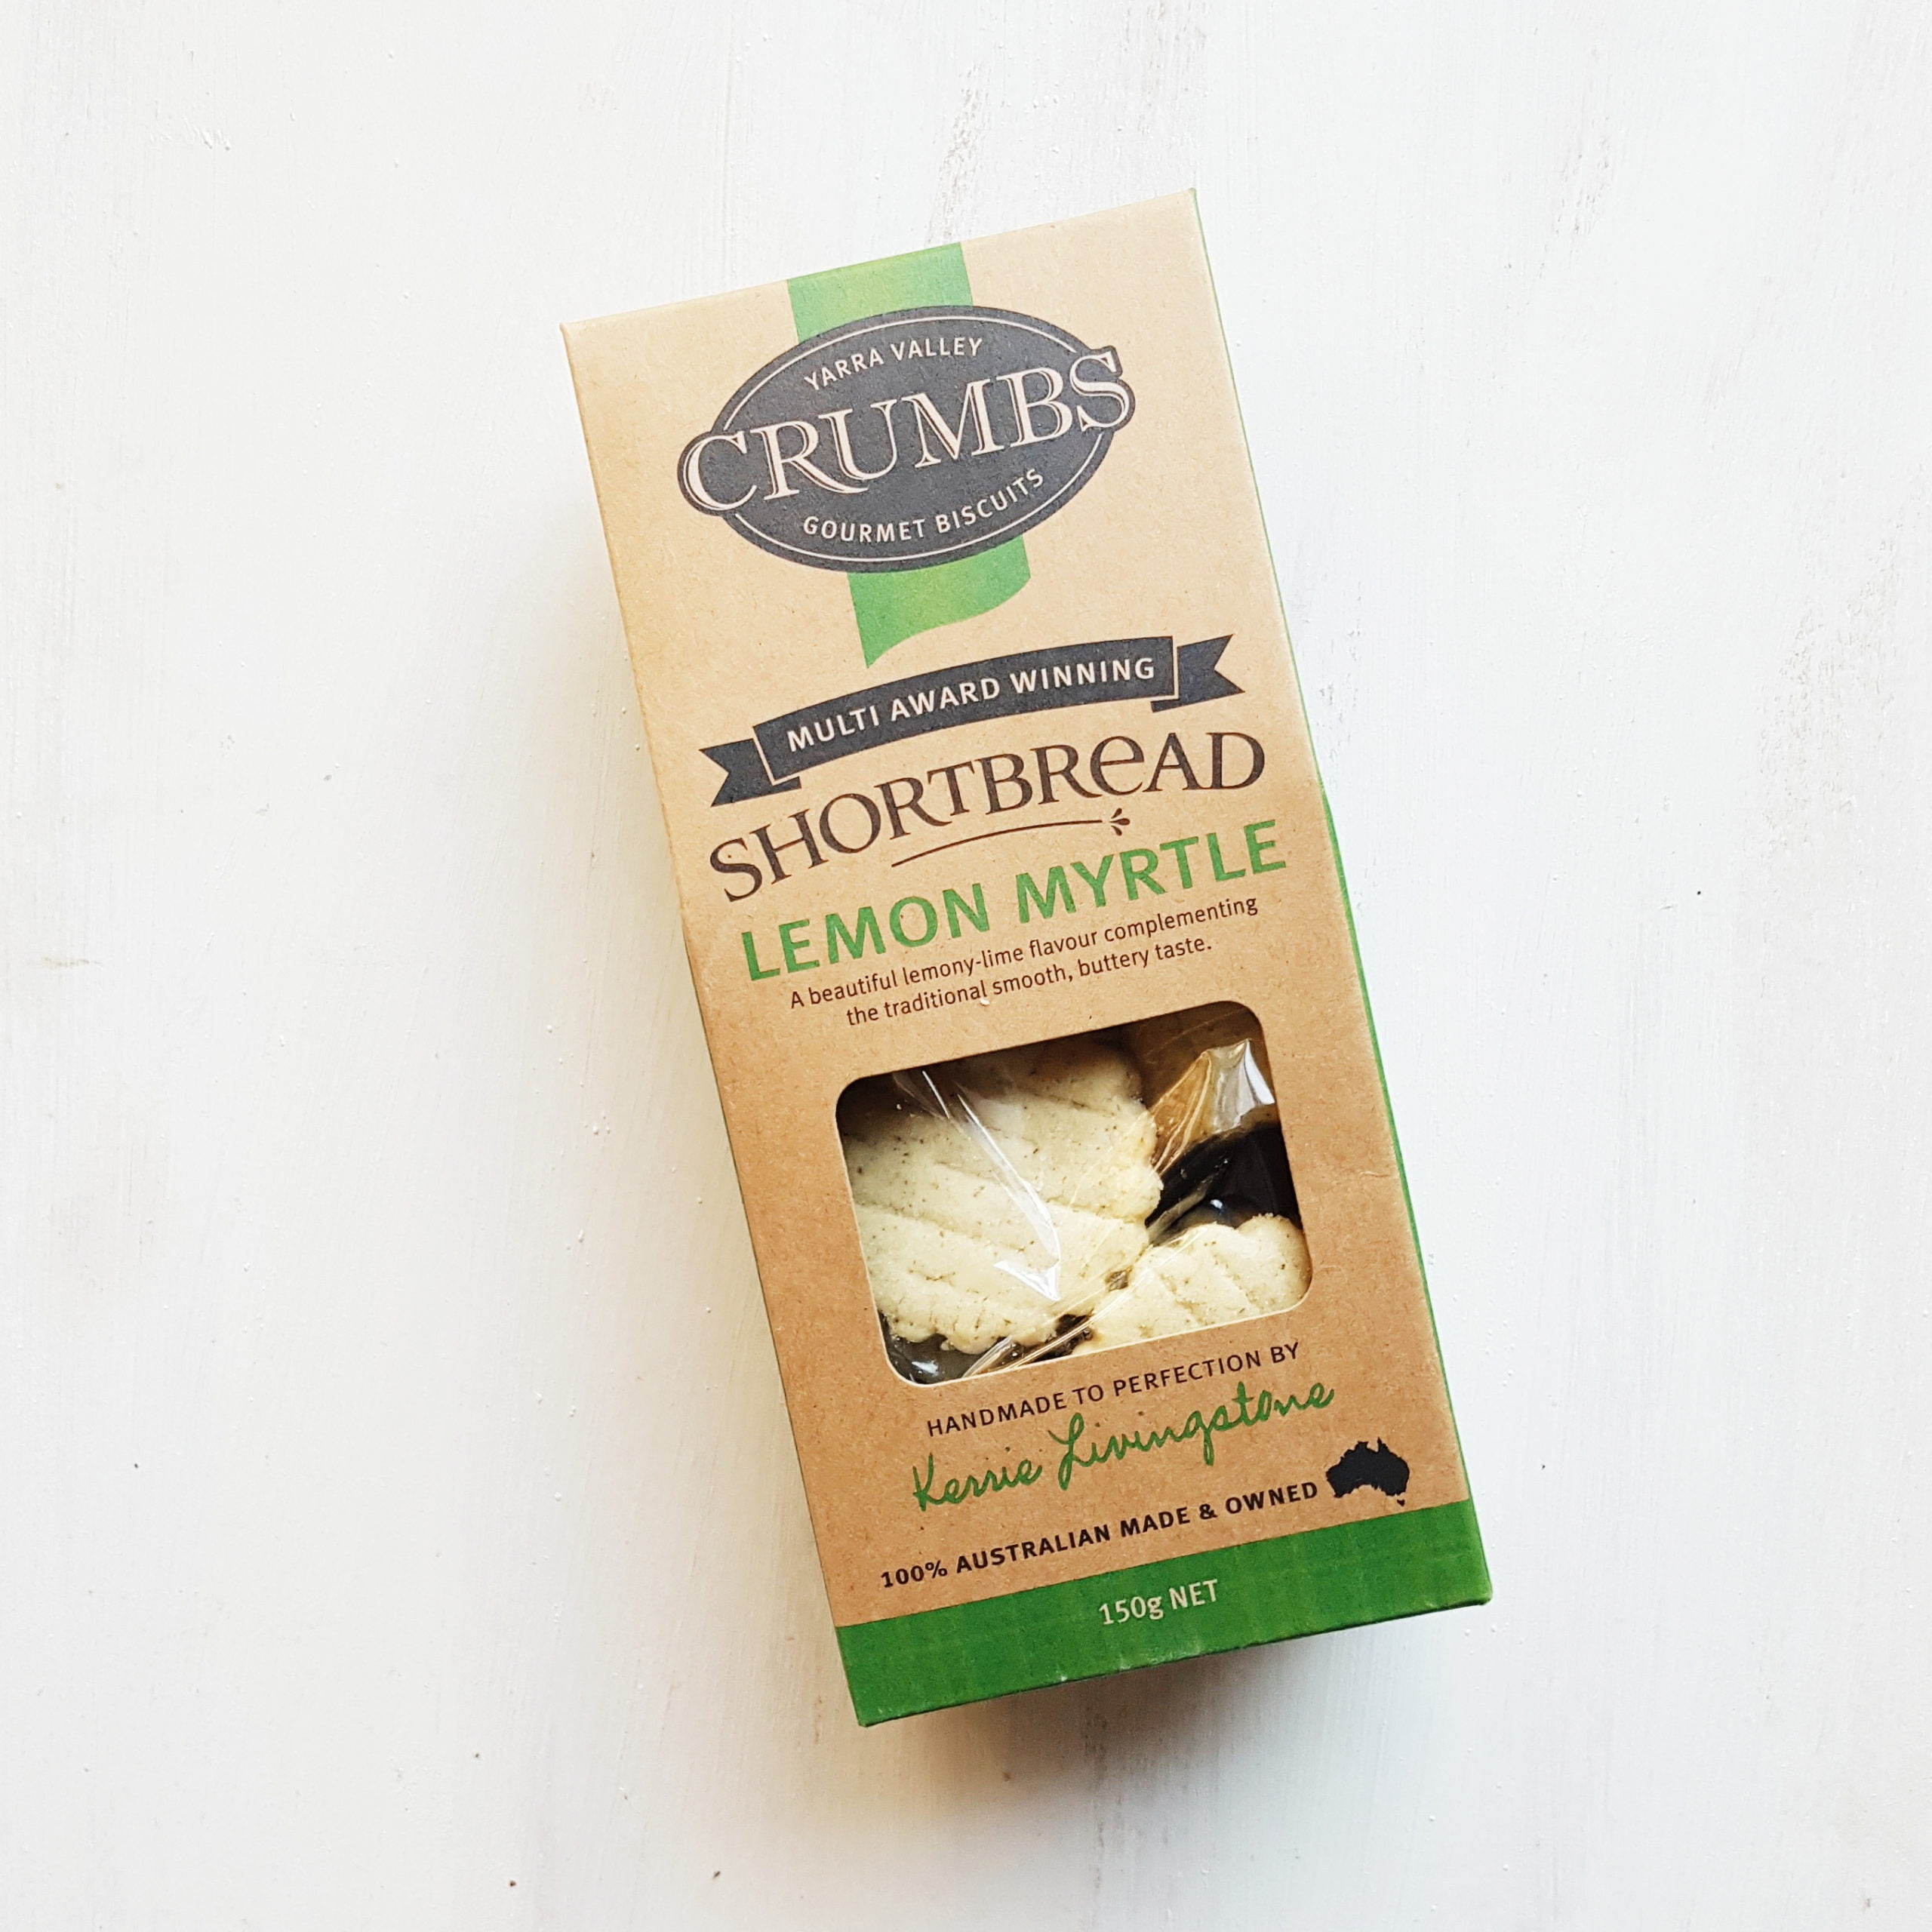 Crumbs Gourmet Biscuits